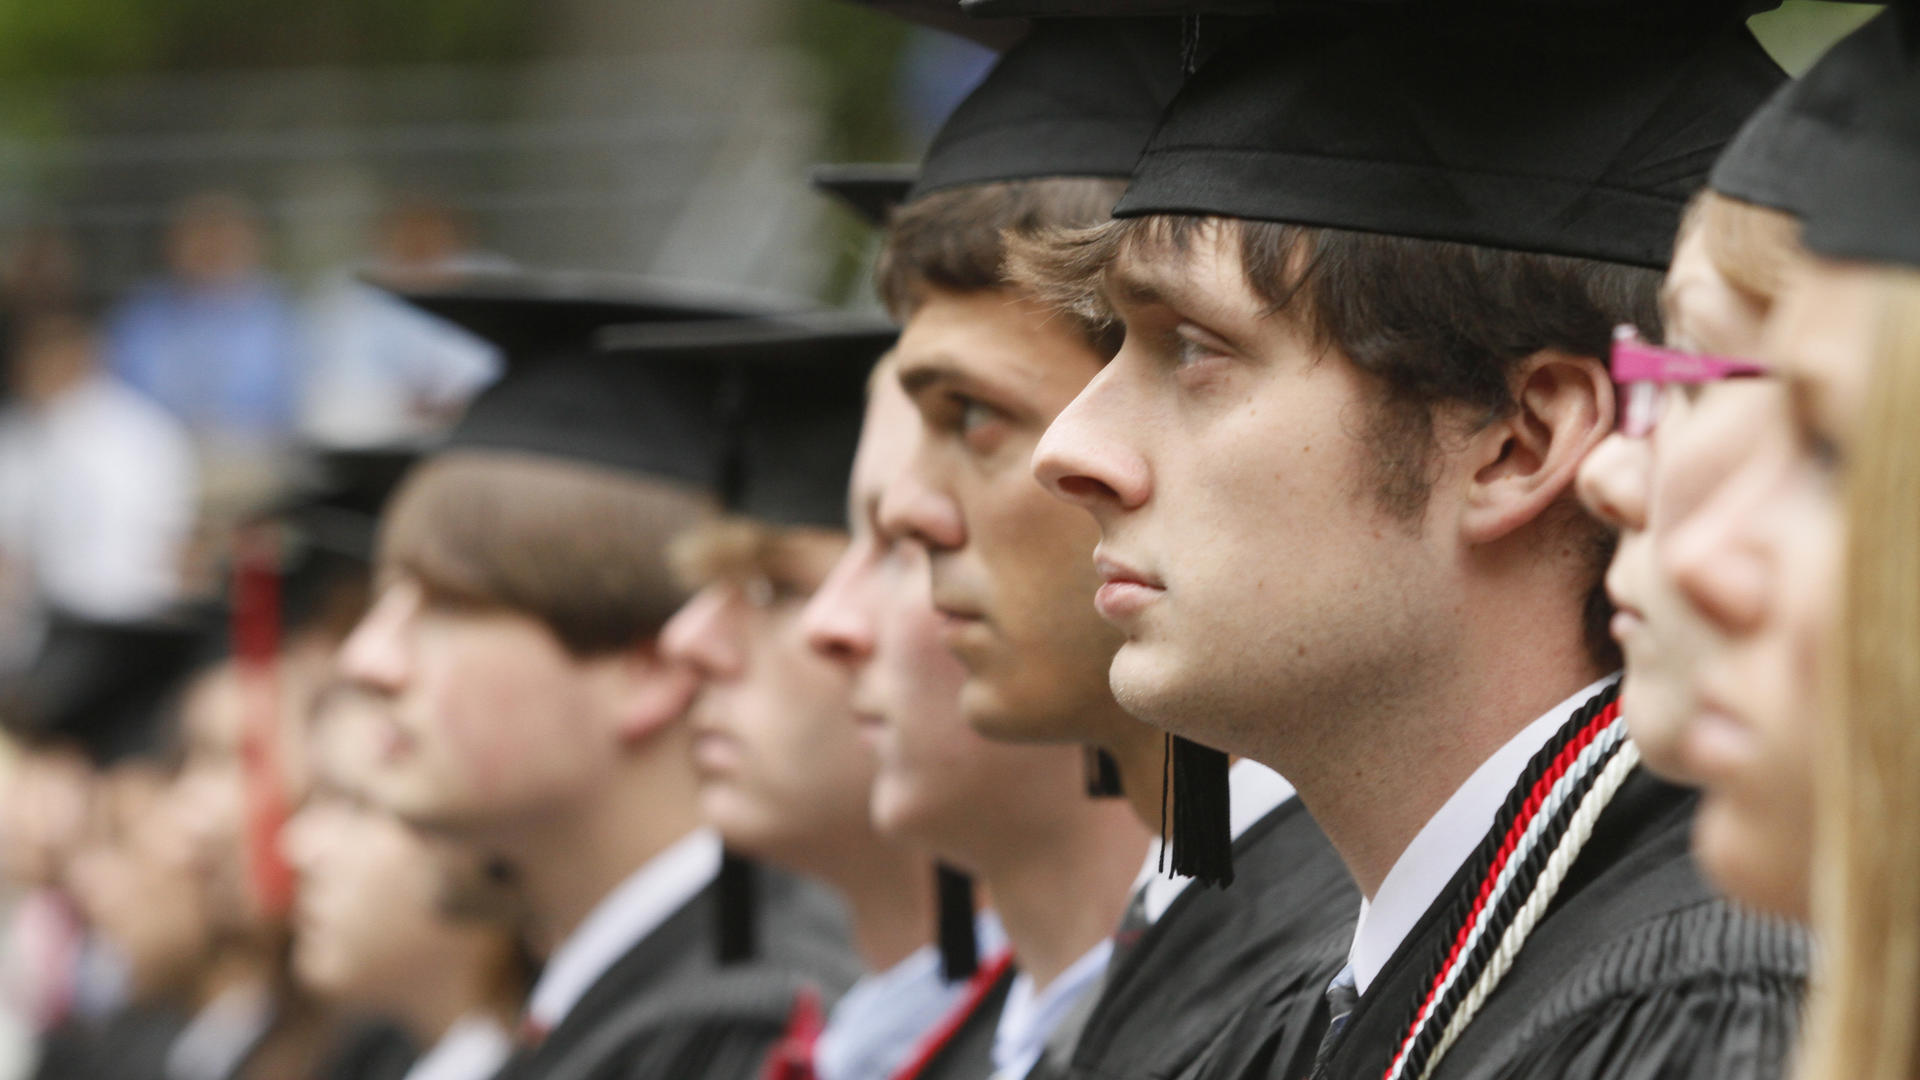 Students in caps and gowns are shown in profile